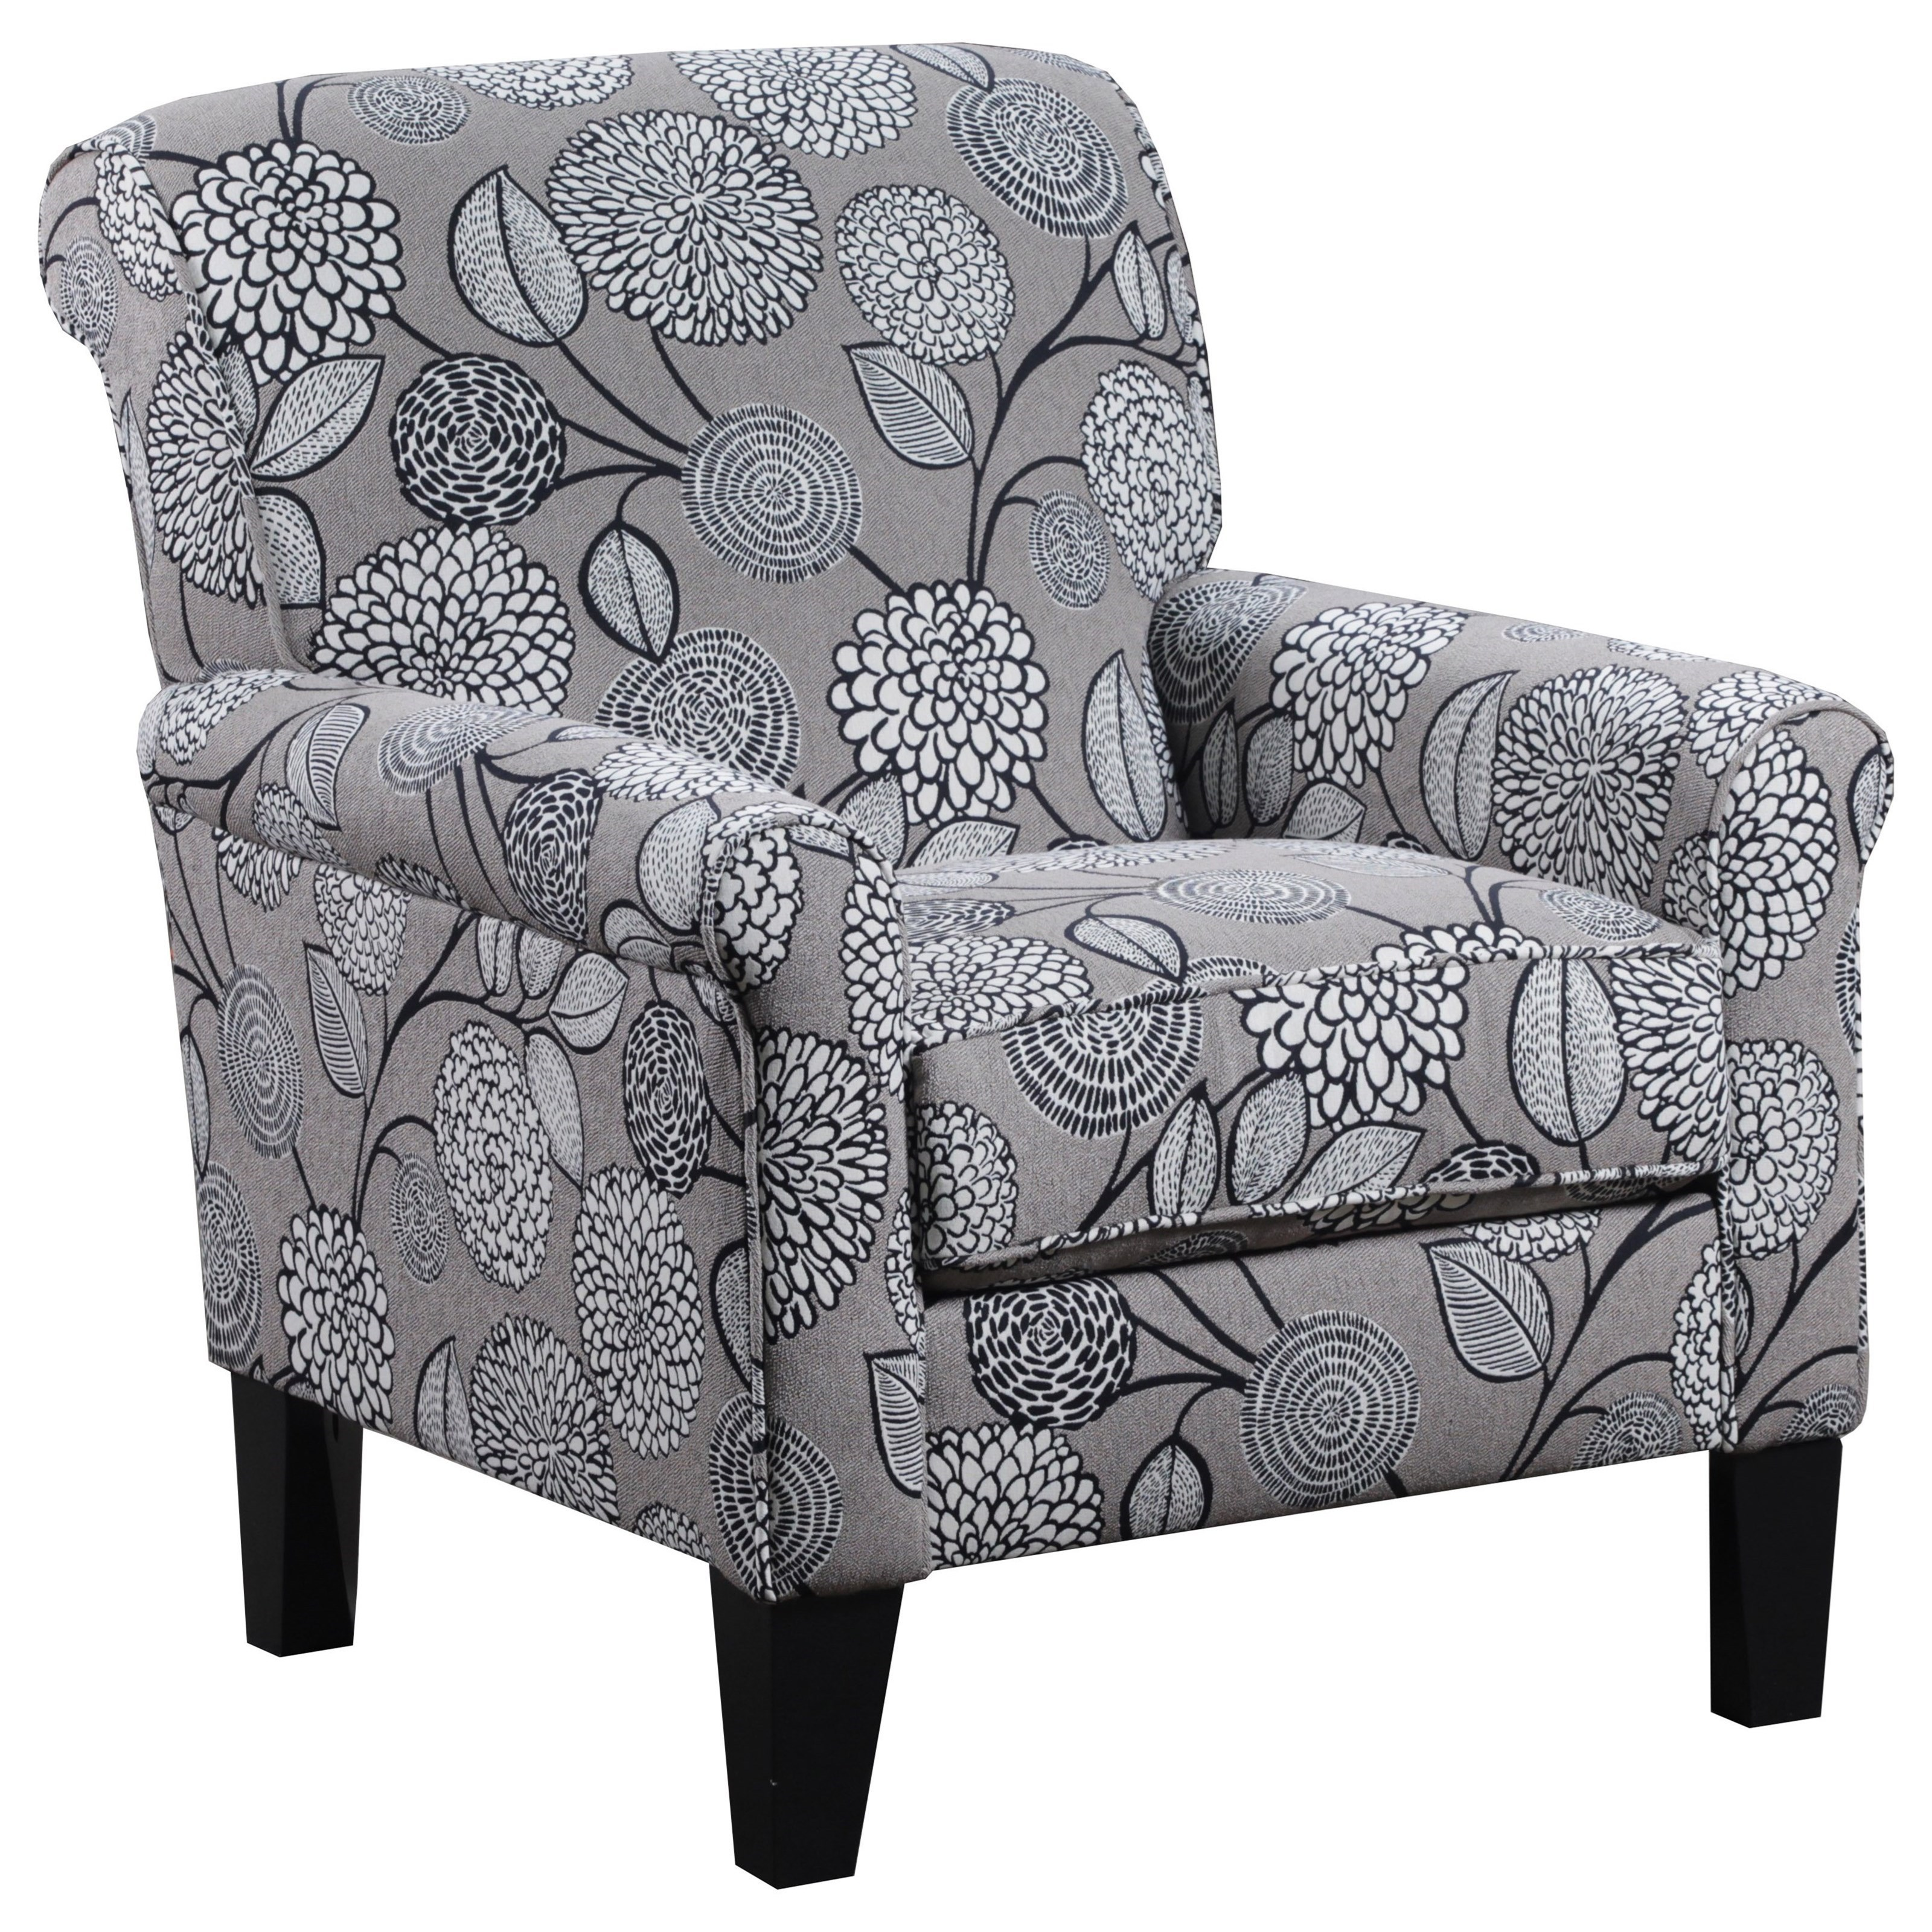 transitional accent chairs adirondack cushions target vfm basics 2160 chair virginia